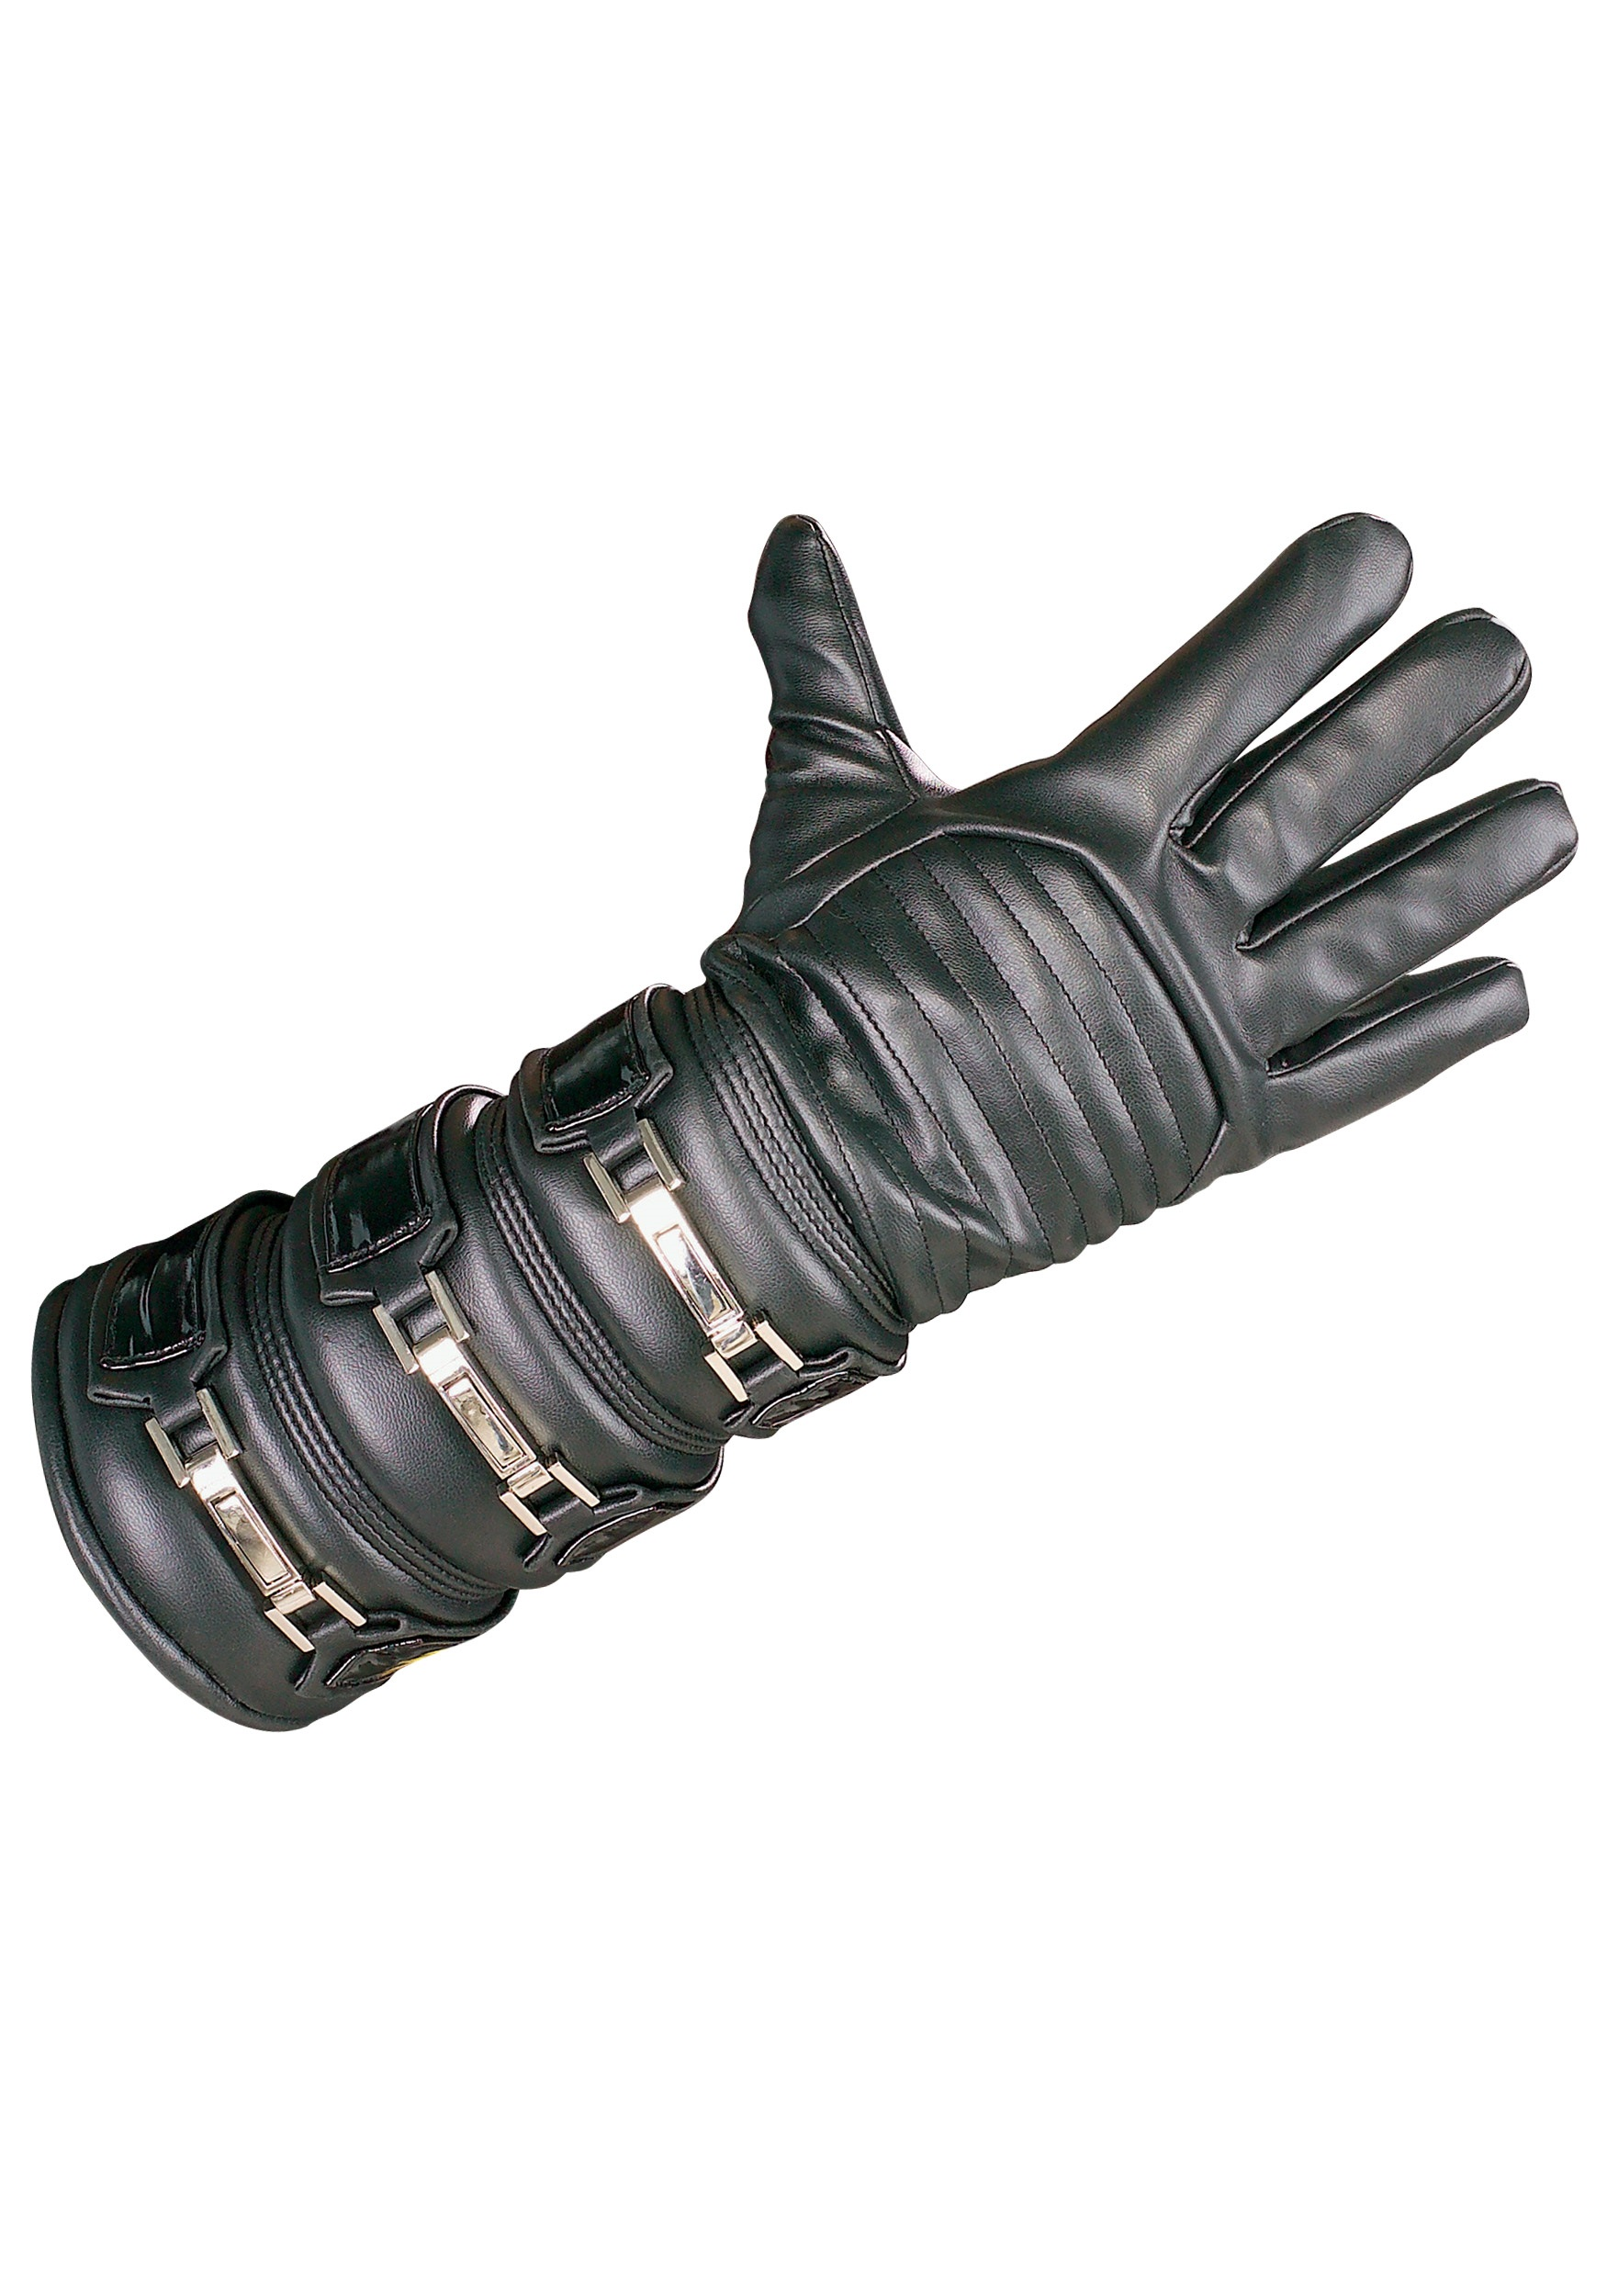 Anakin Skywalker Glove RU1111